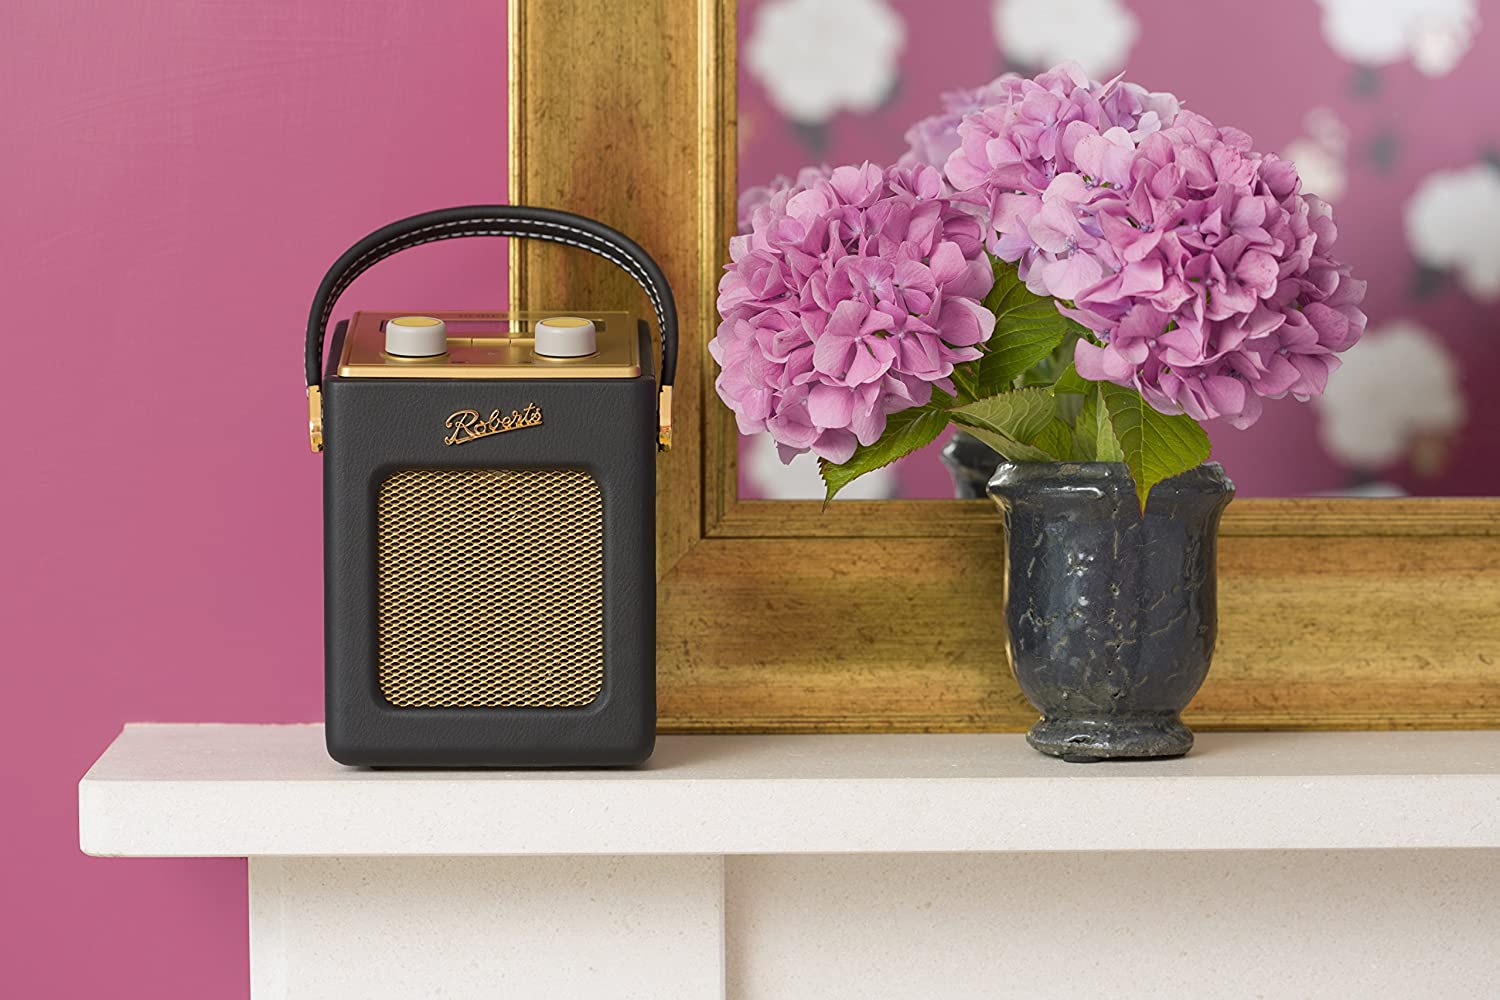 Roberts Radio Revival Mini DAB/DAB+/FM Digital Radio Black